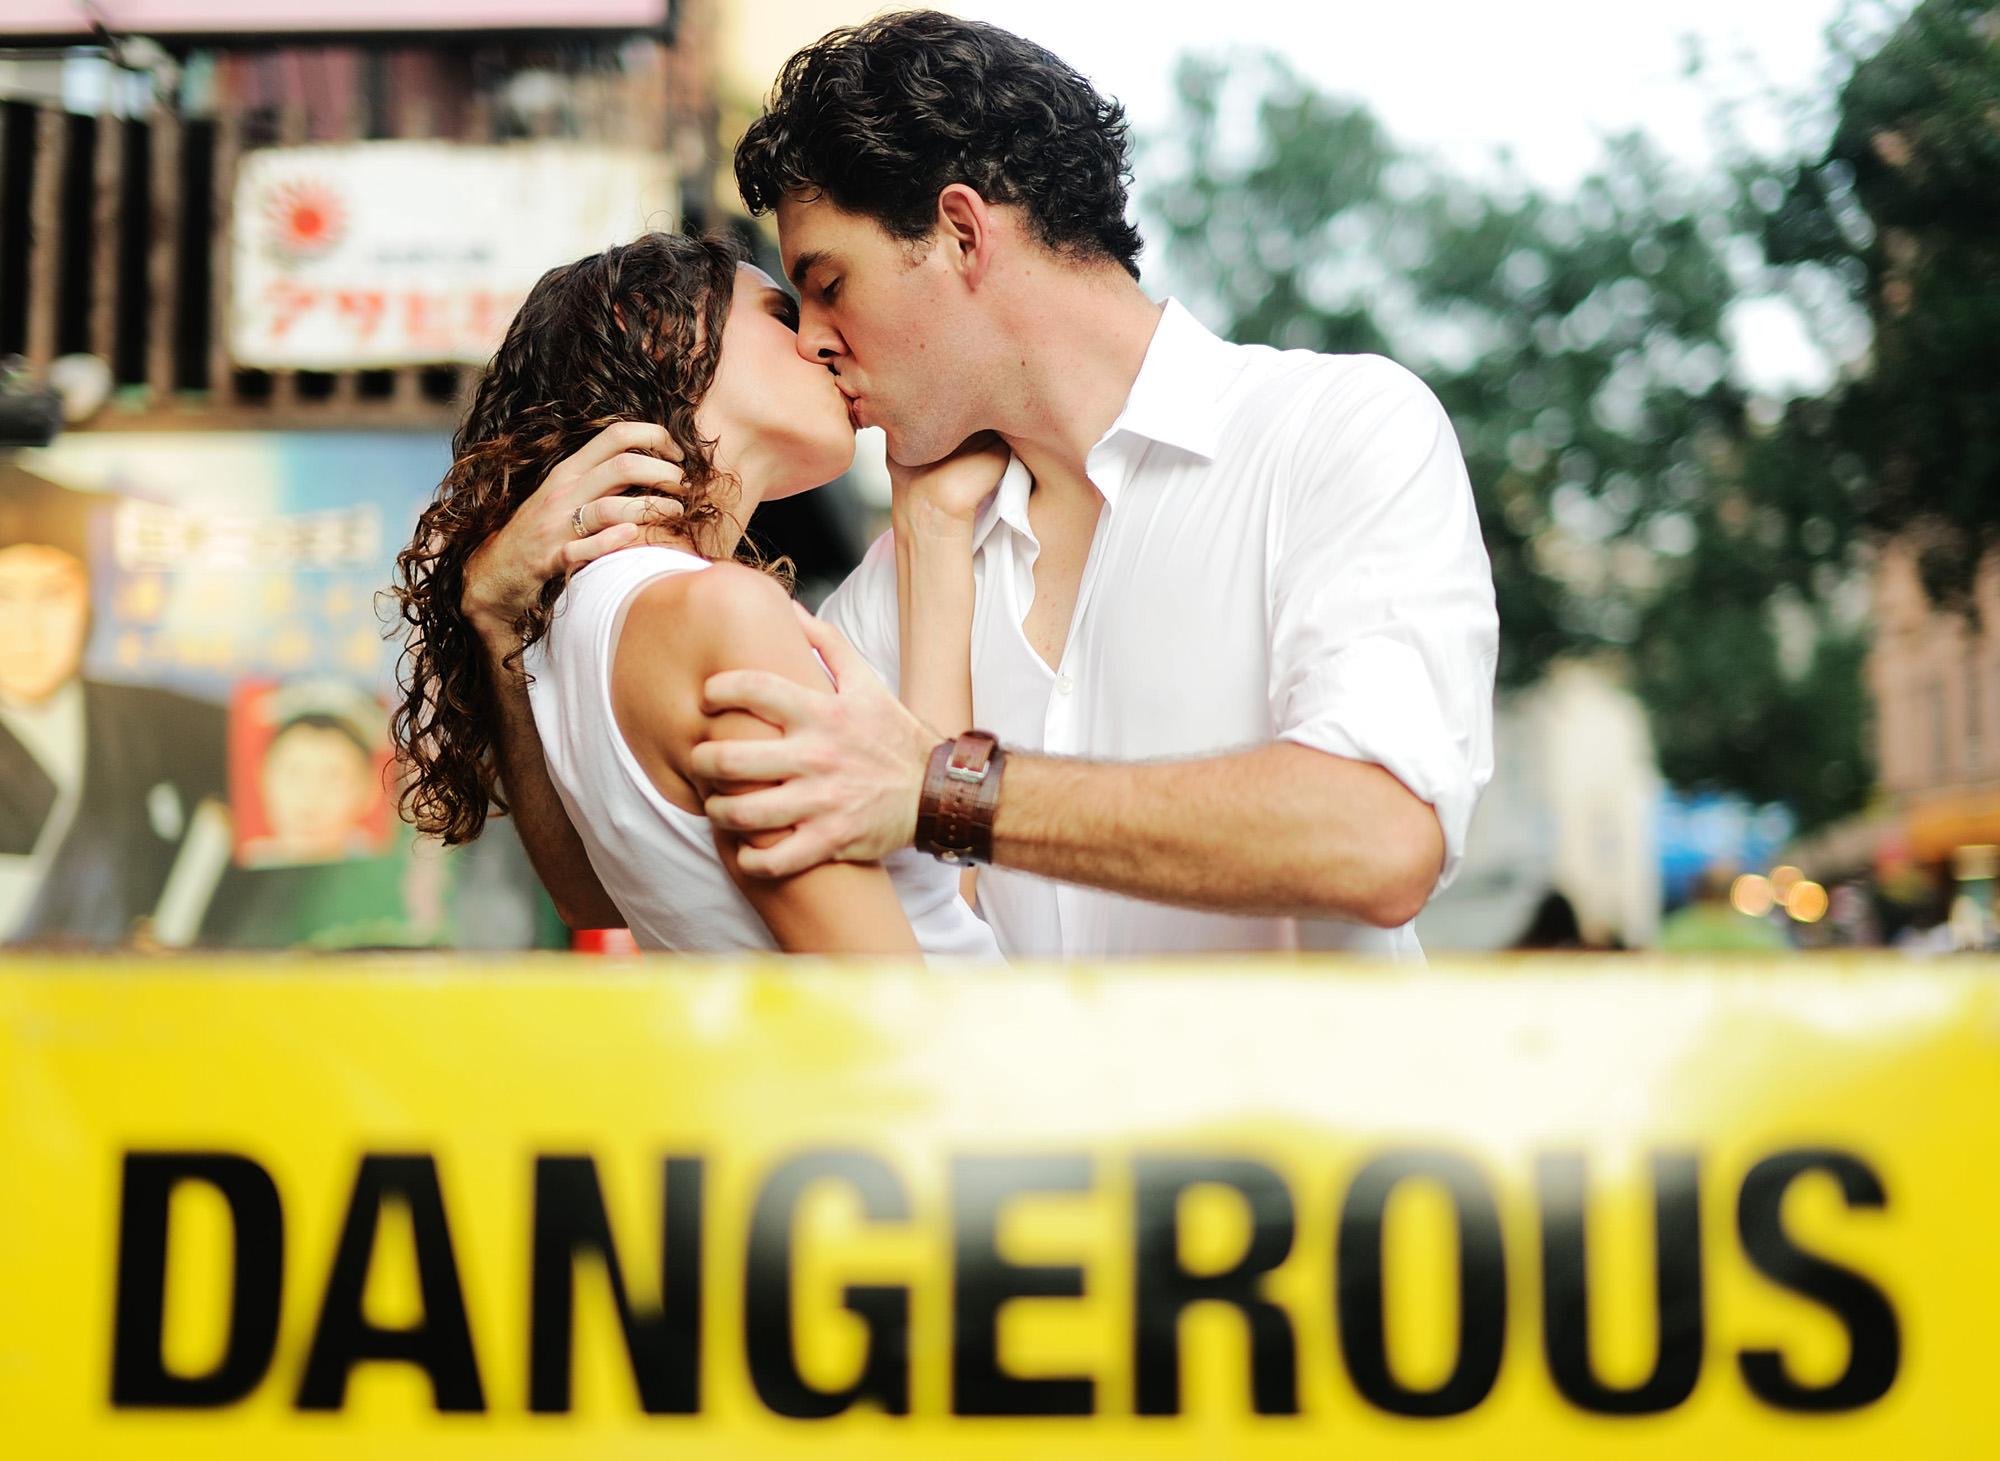 Creative engagement portrait couple kissing in front of Dangerous yellow tape, by The Brenizers